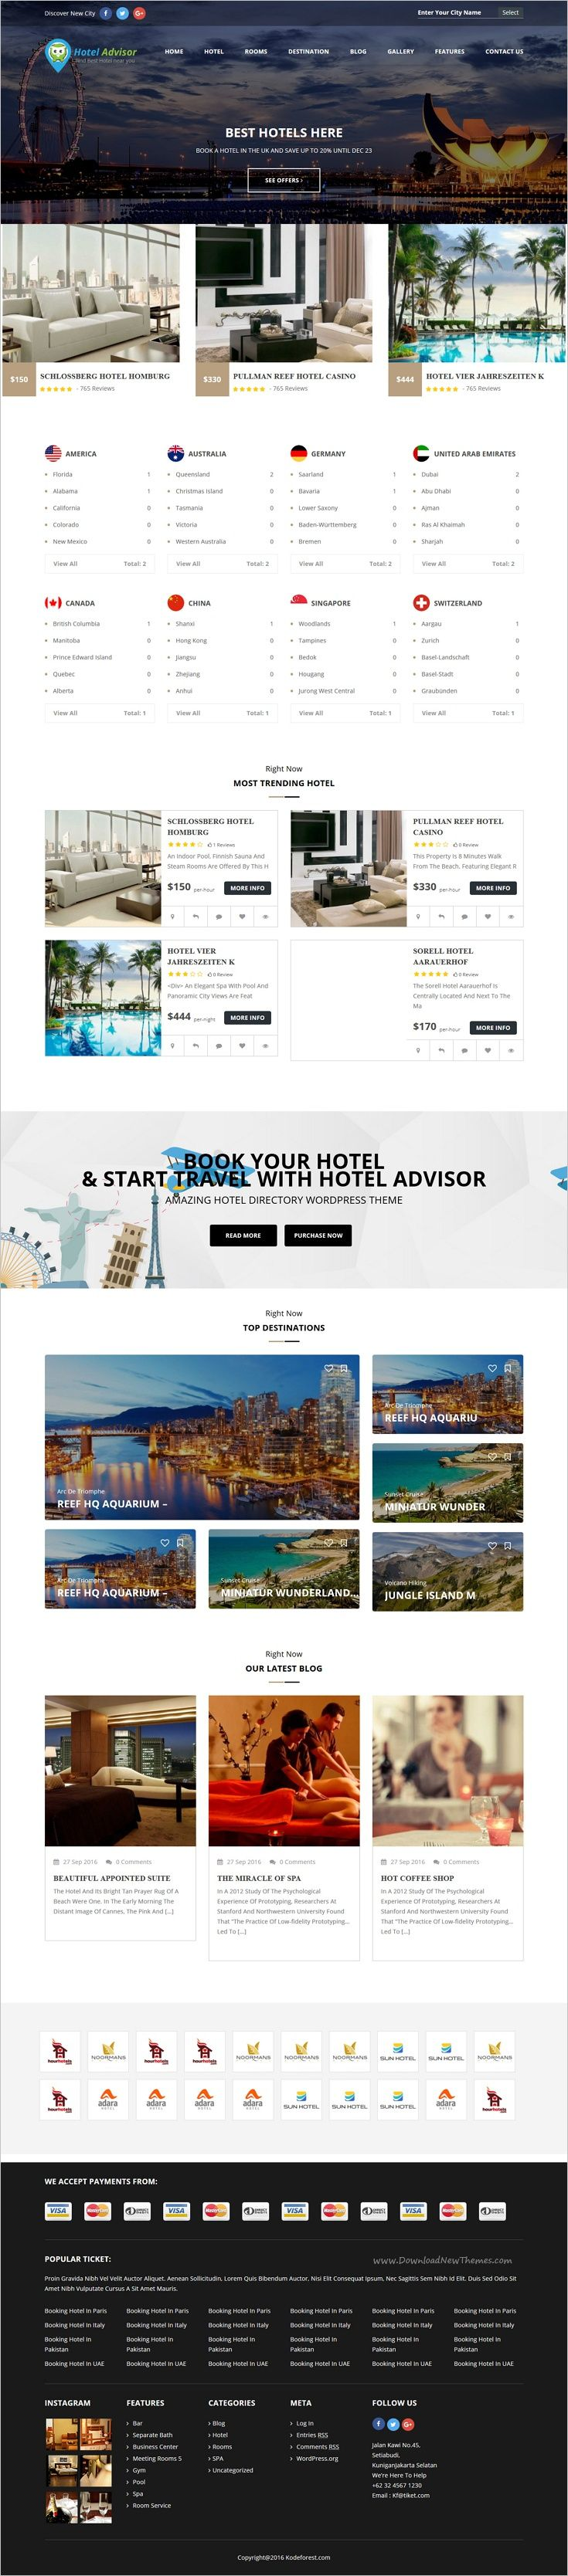 Hotel Advisor is a clean and modern design 6 in 1 #WordPress theme to manage #hotels, hostels, resorts, rooms reservation with in depth review and #booking management system #website download now➩  https://themeforest.net/item/hotel-advisor-hotel-management-and-booking-wordpress-theme/18435488?ref=Datasata